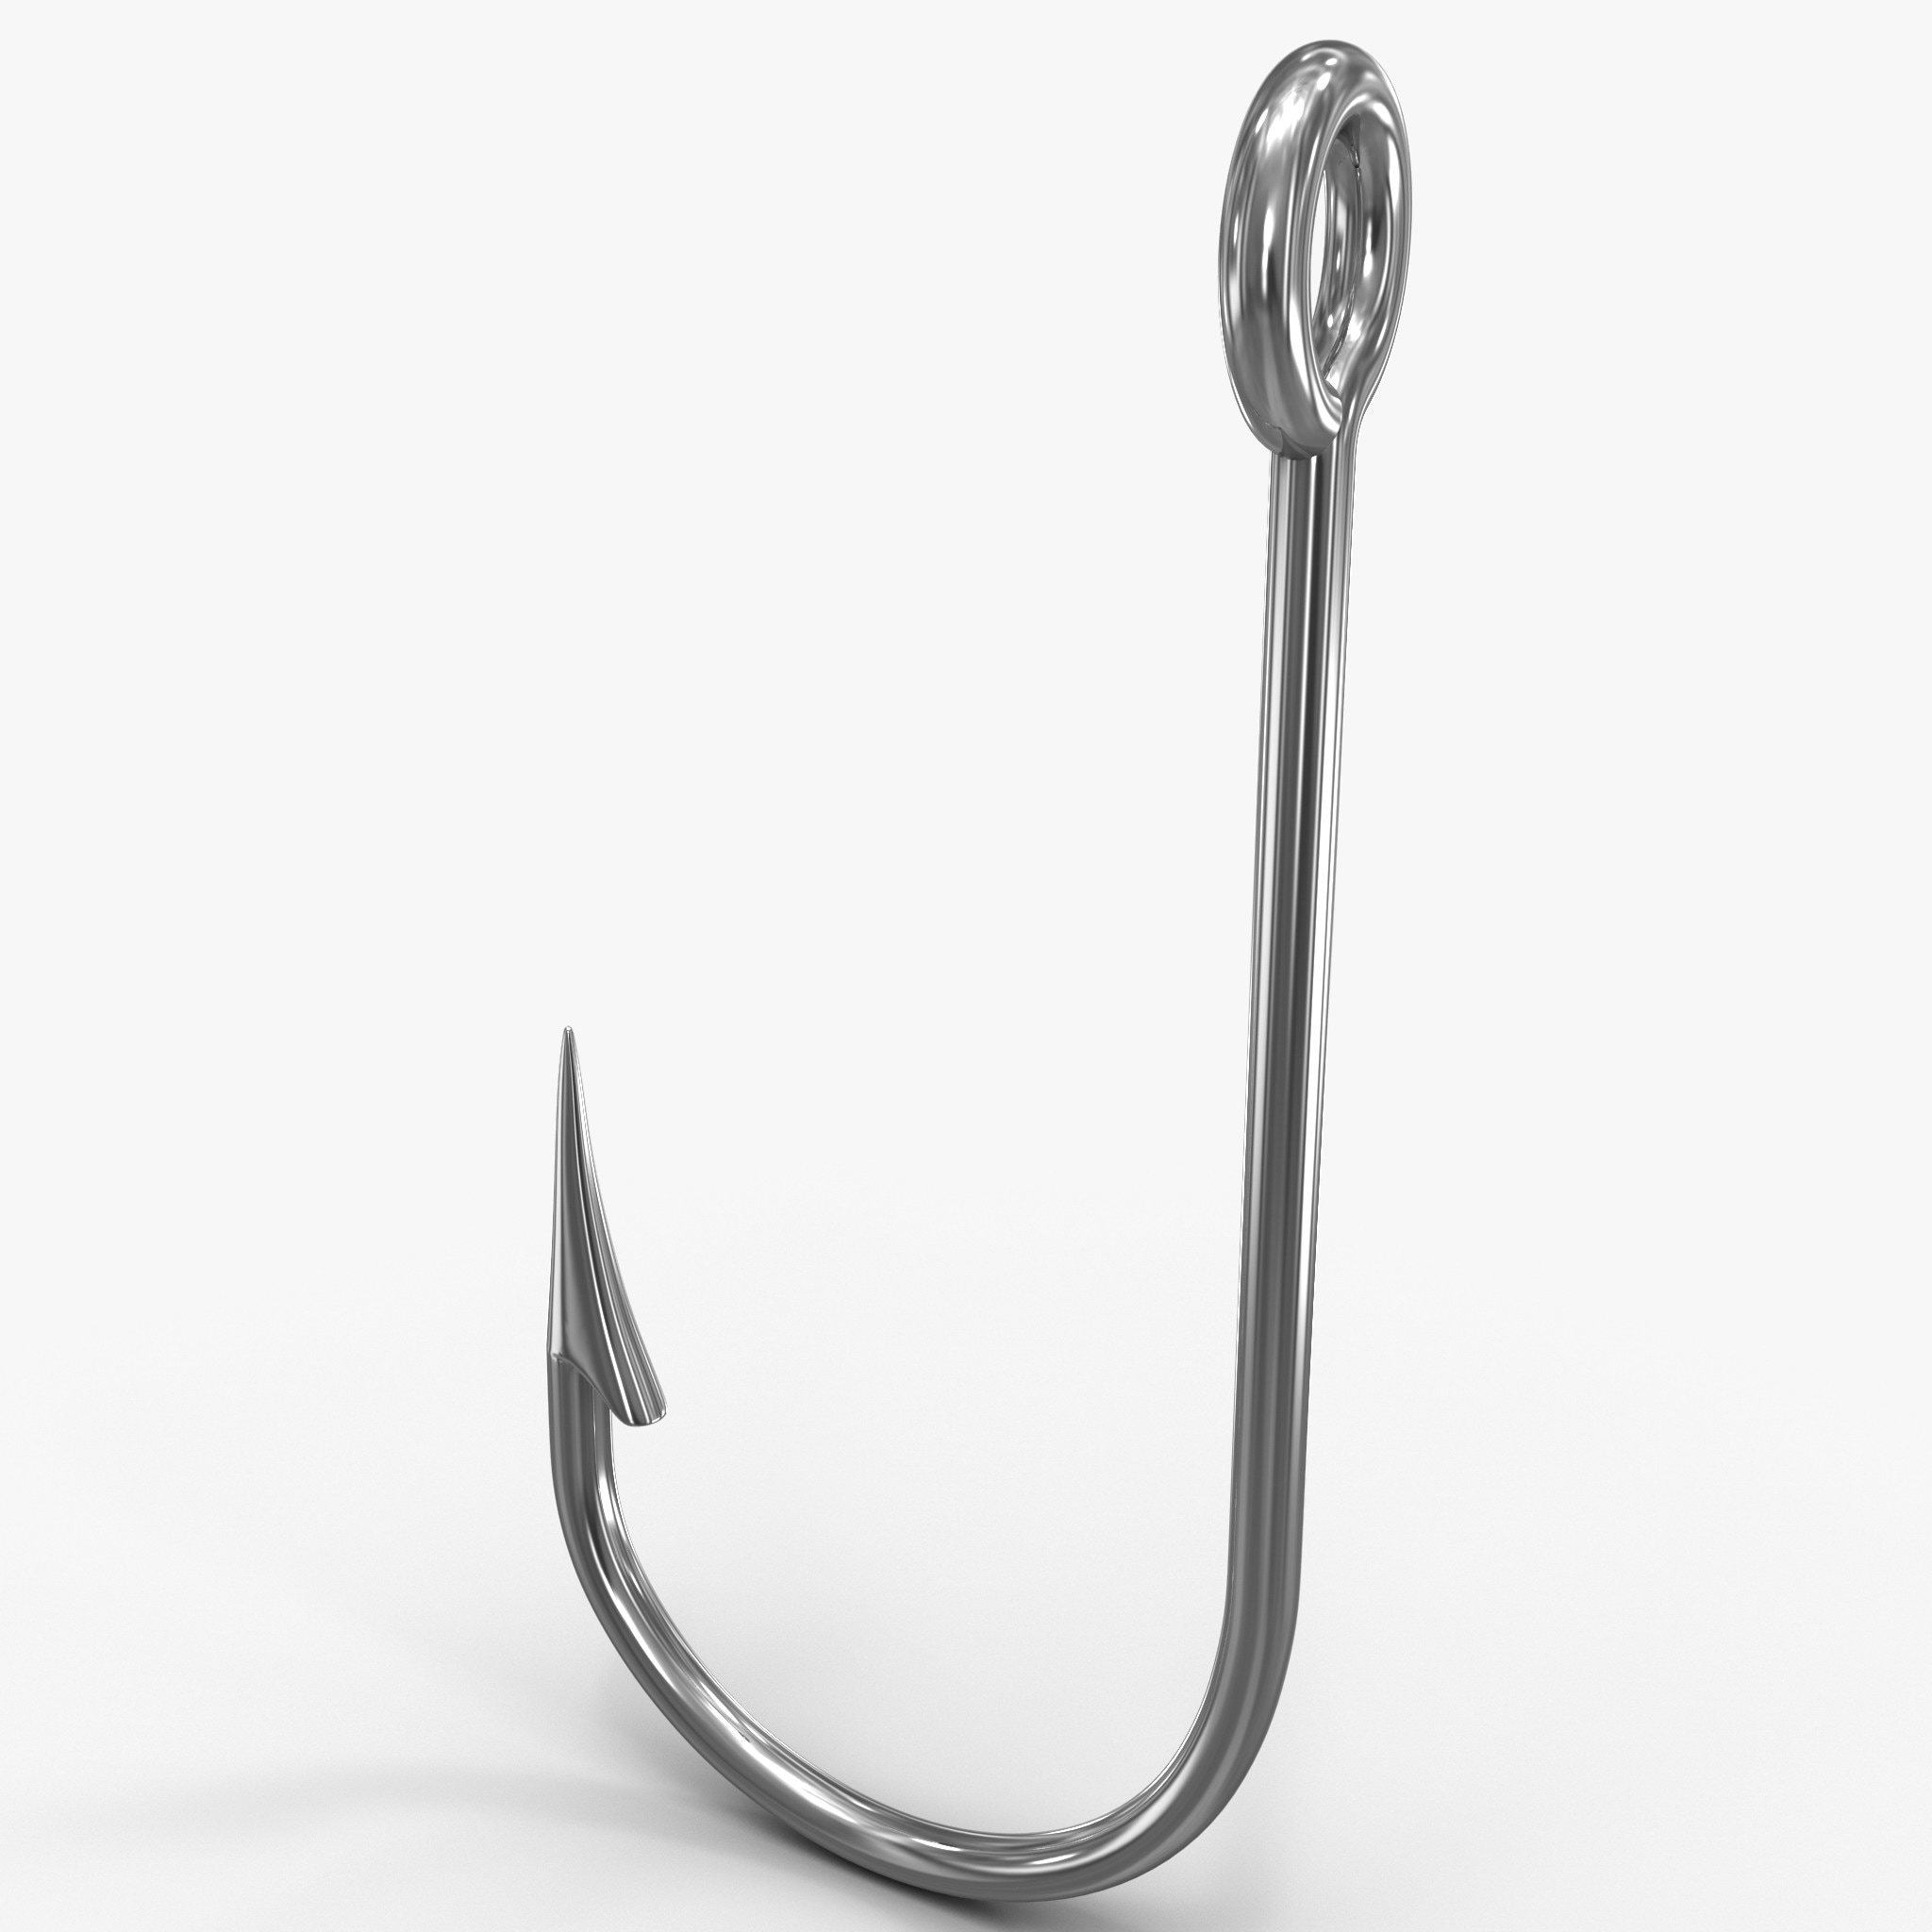 Fishing hook for Fish n hook